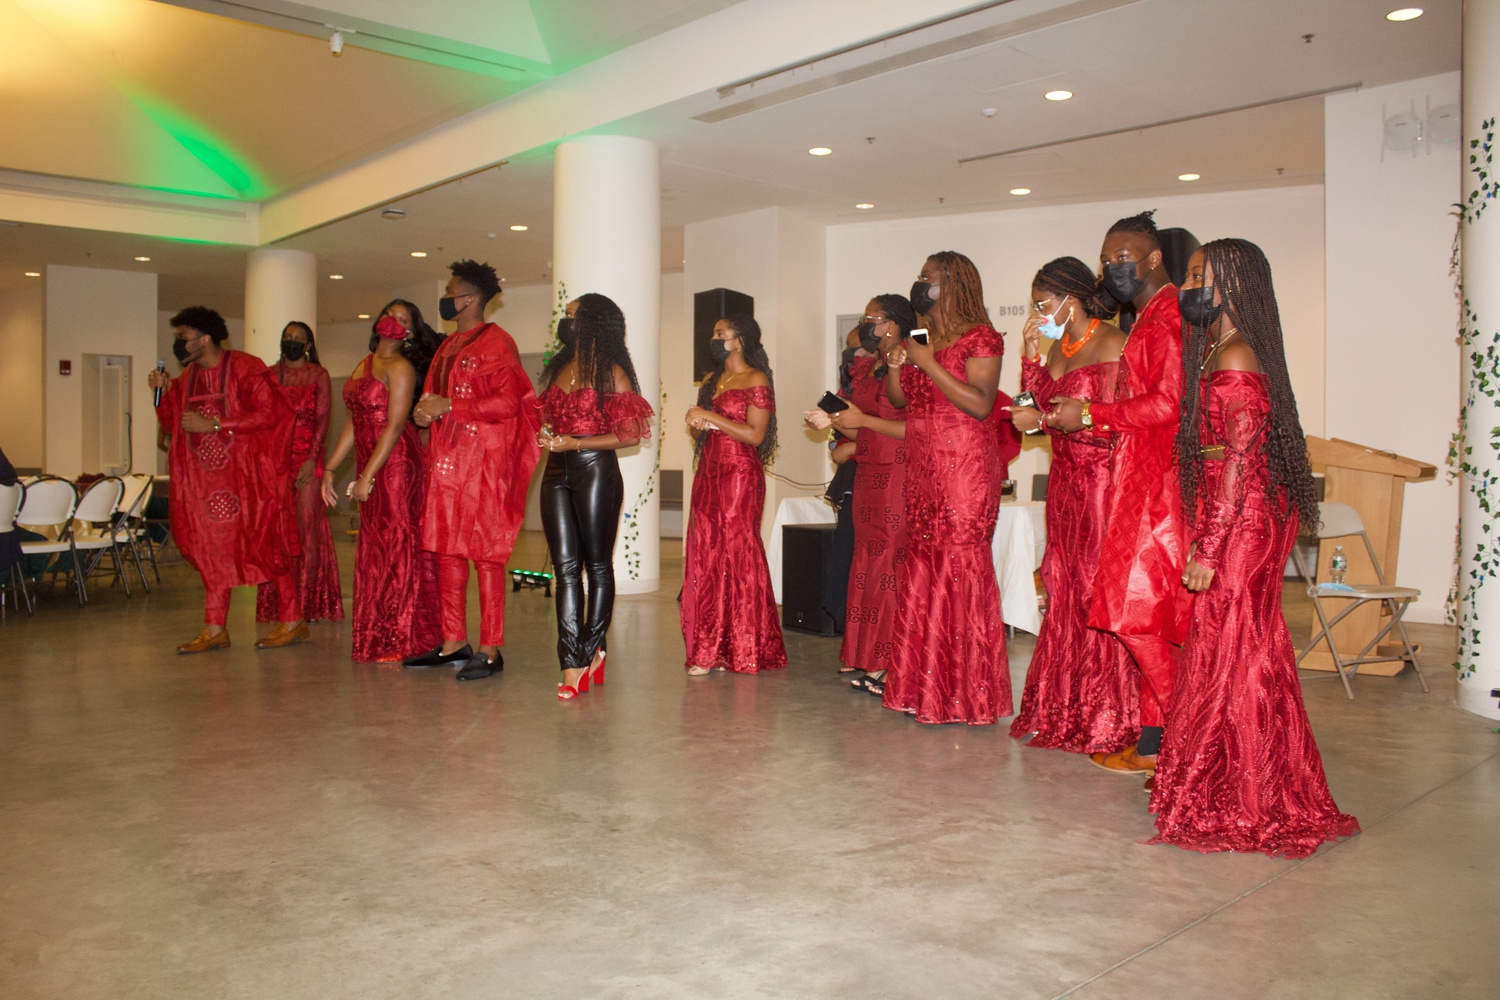 Tickets sold out to the Nigerian Students Association's 12th annual Nigerian Independence Day Gala last Saturday.